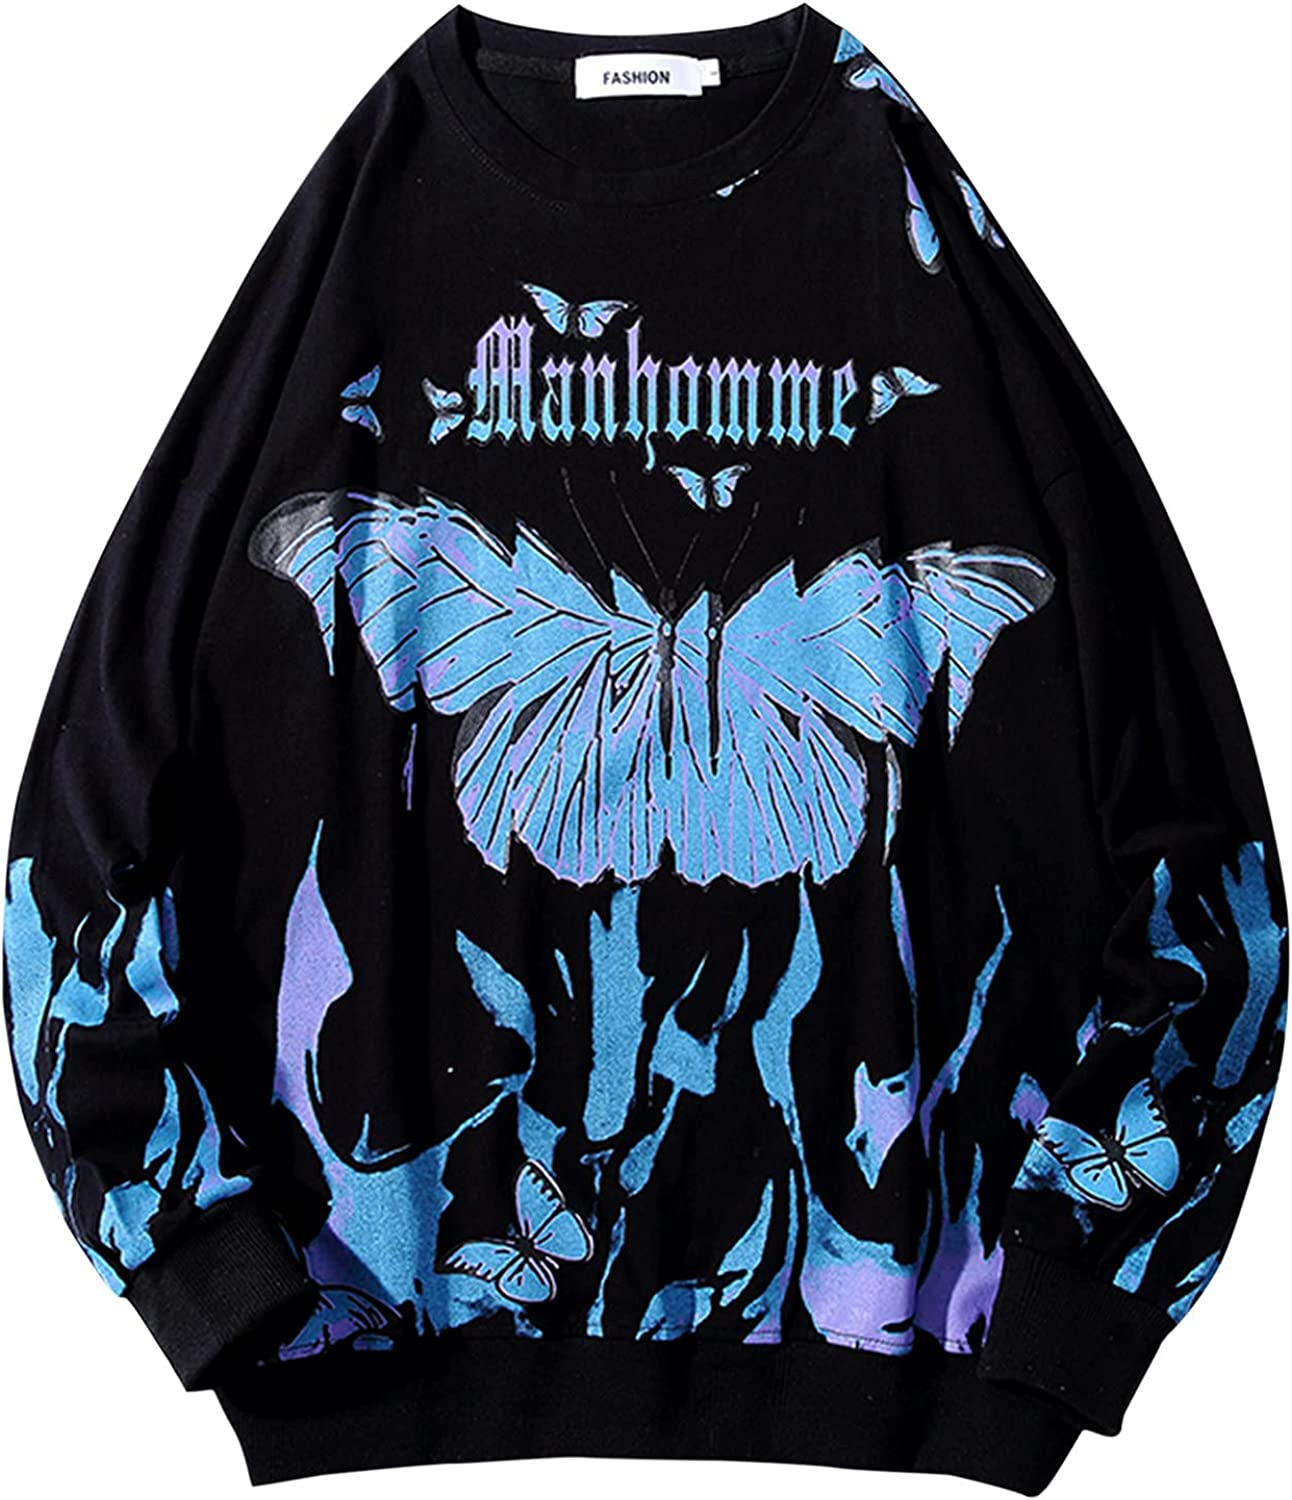 UBST Butterflies Sweatshirts for Mens, Fall Plus Size Drape Shoulder Young Teen Boys Fashion Crewneck Pullover Tops